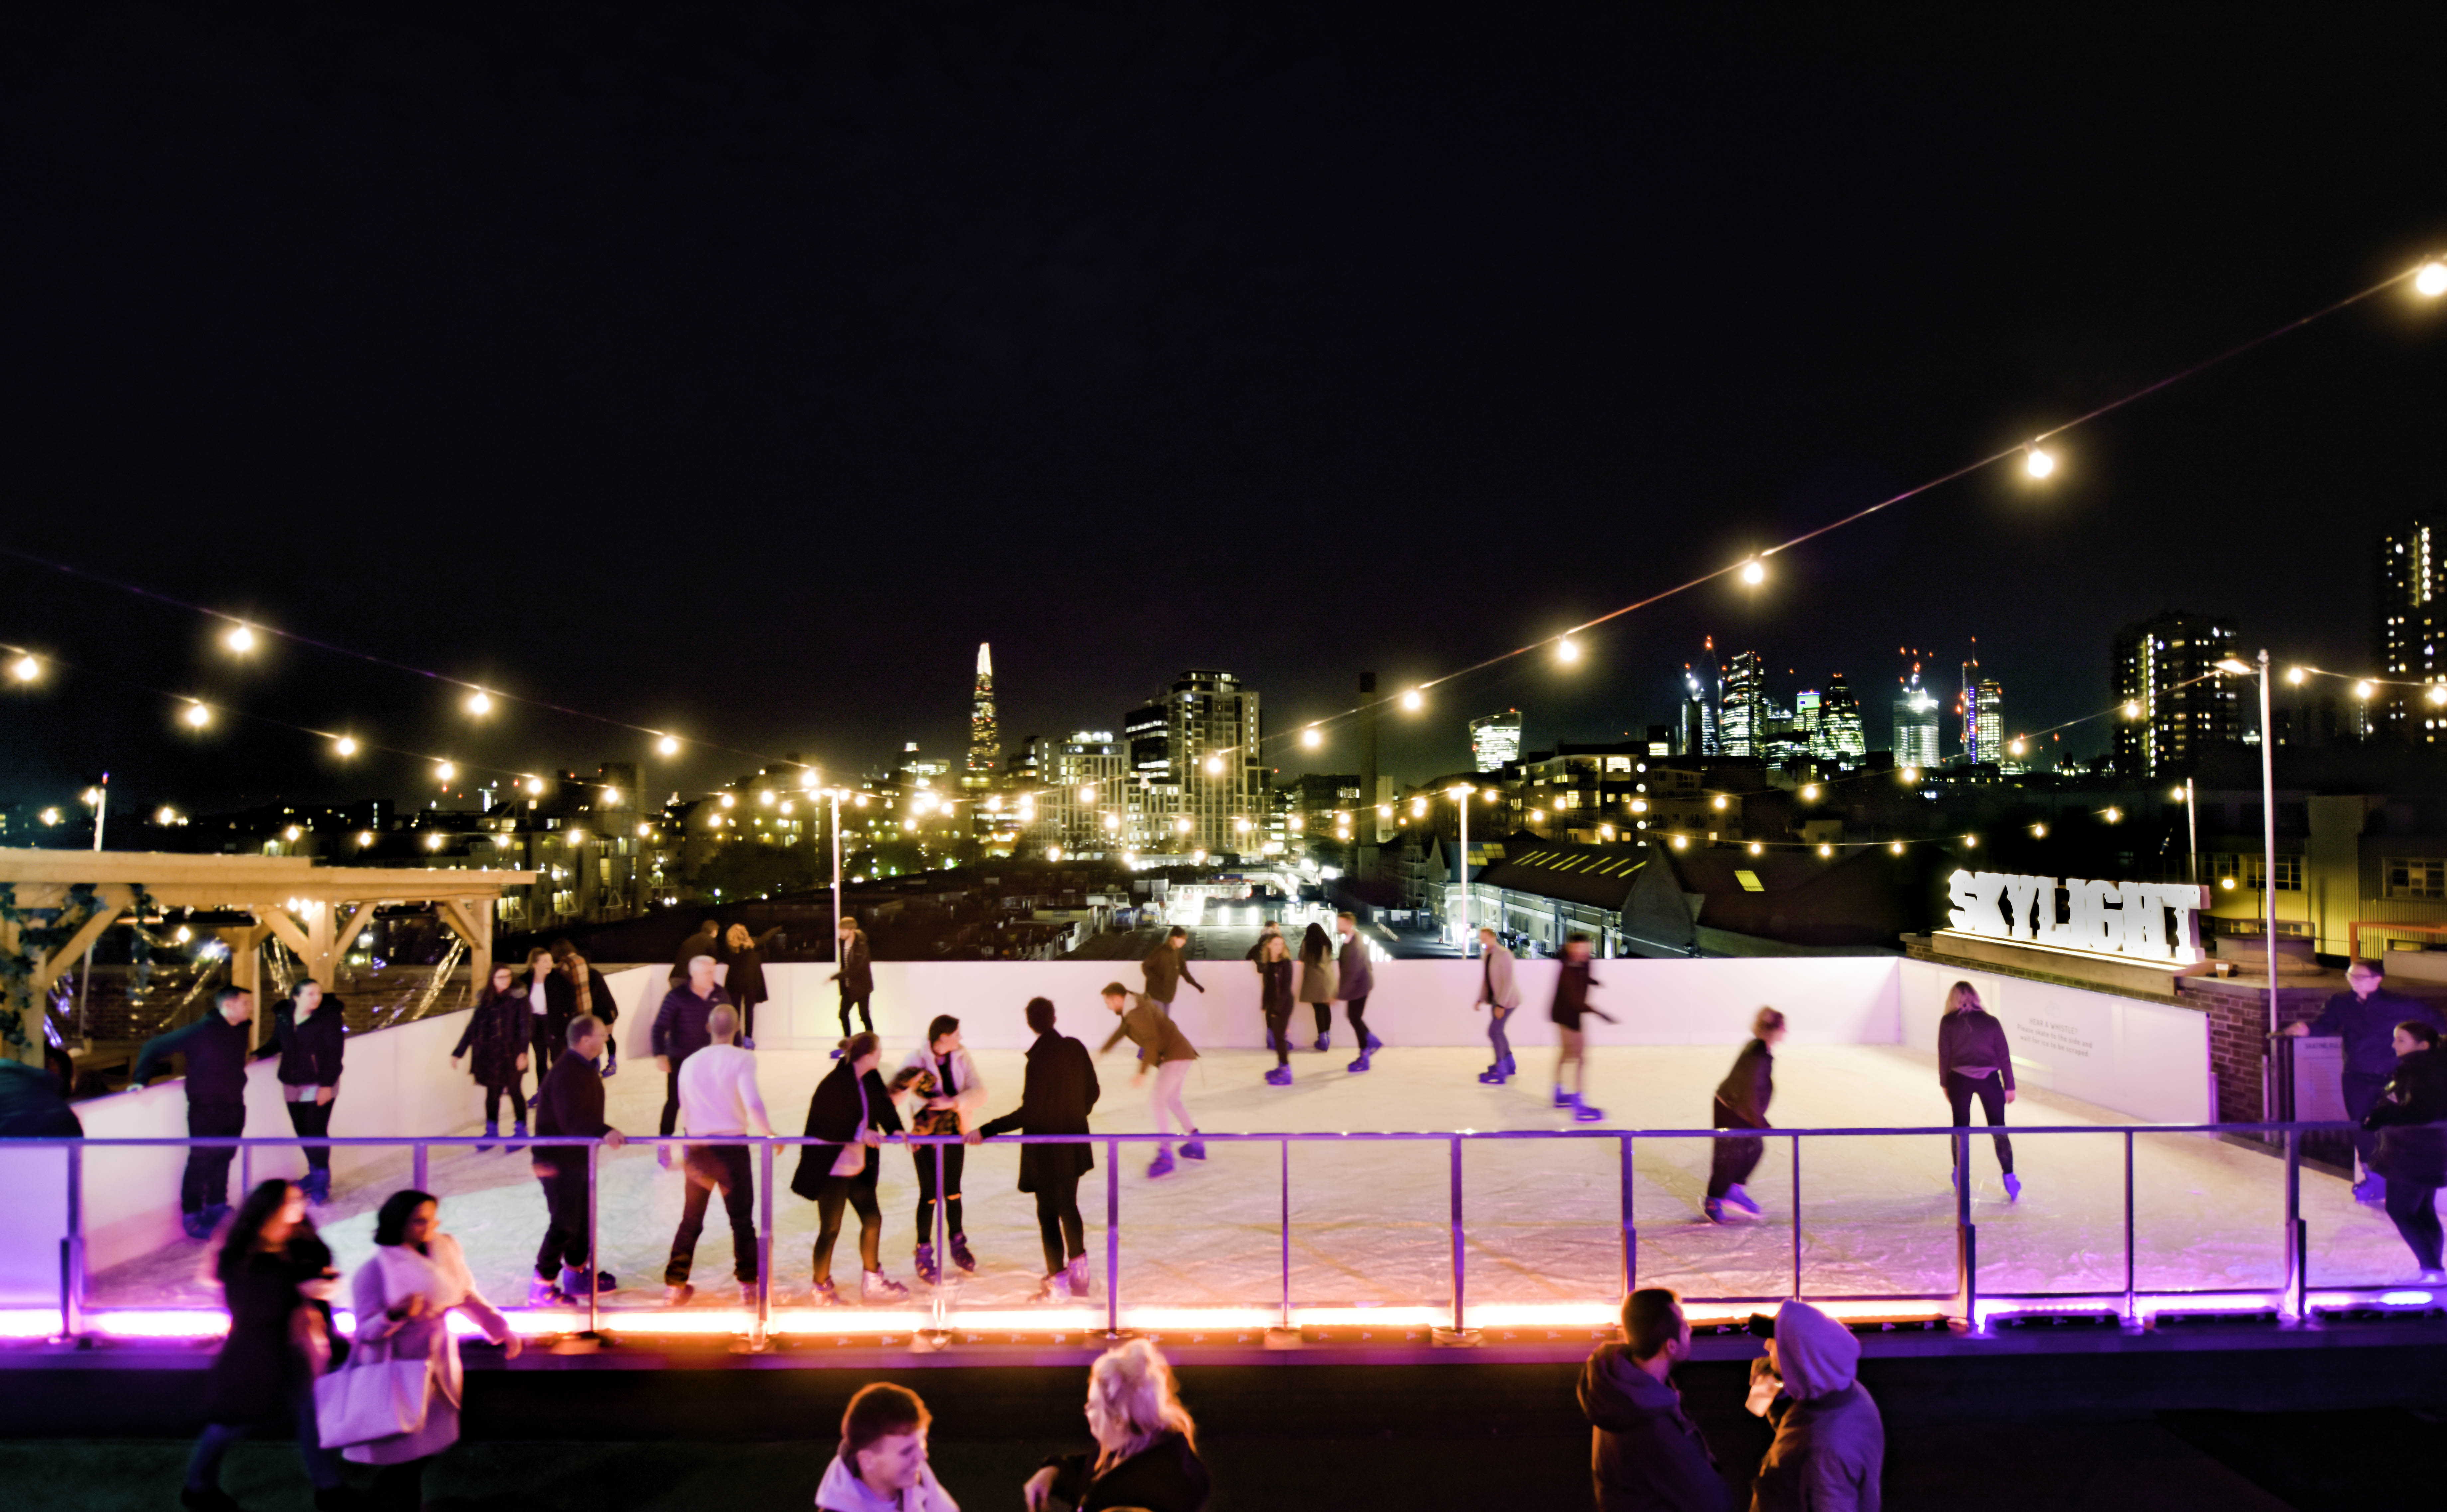 The rooftop ice skating rink at Skylight, Tobacco Dock. There is the London skyline in the background and people are skating around on the ice